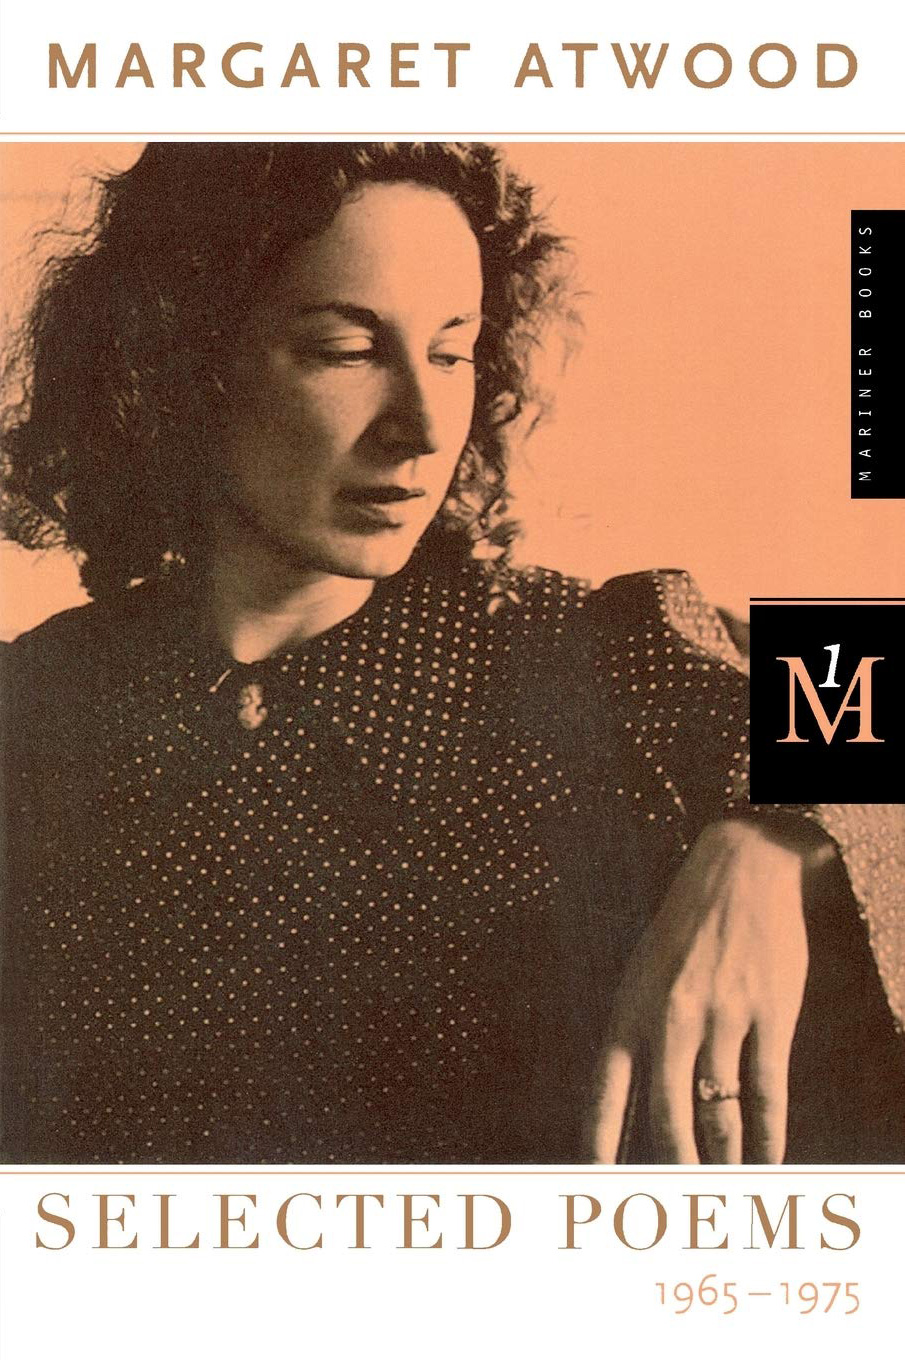 Margaret Atwood on Marriage